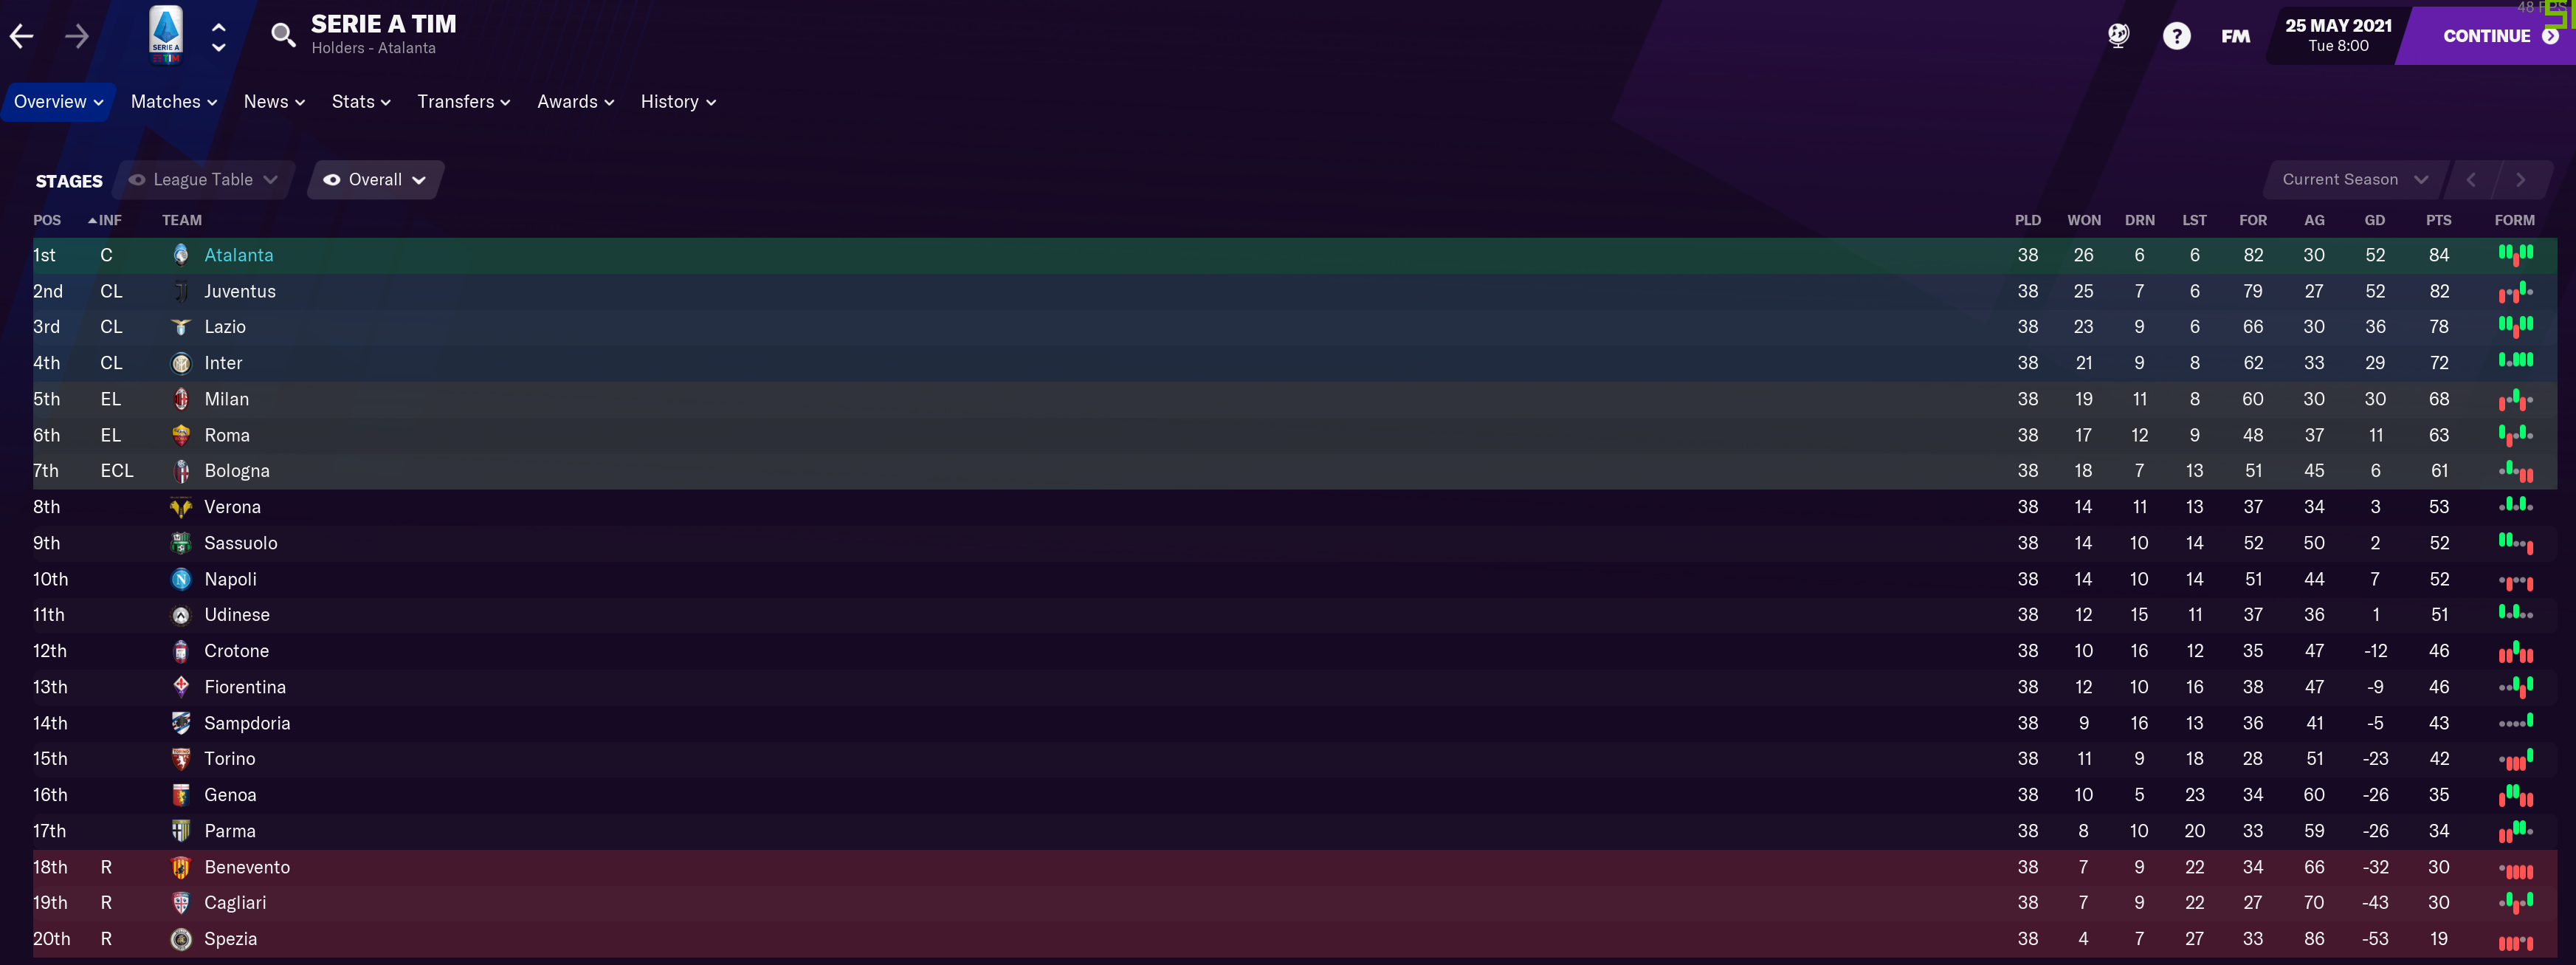 #7 First Full Complete Seriea A Season.PNG